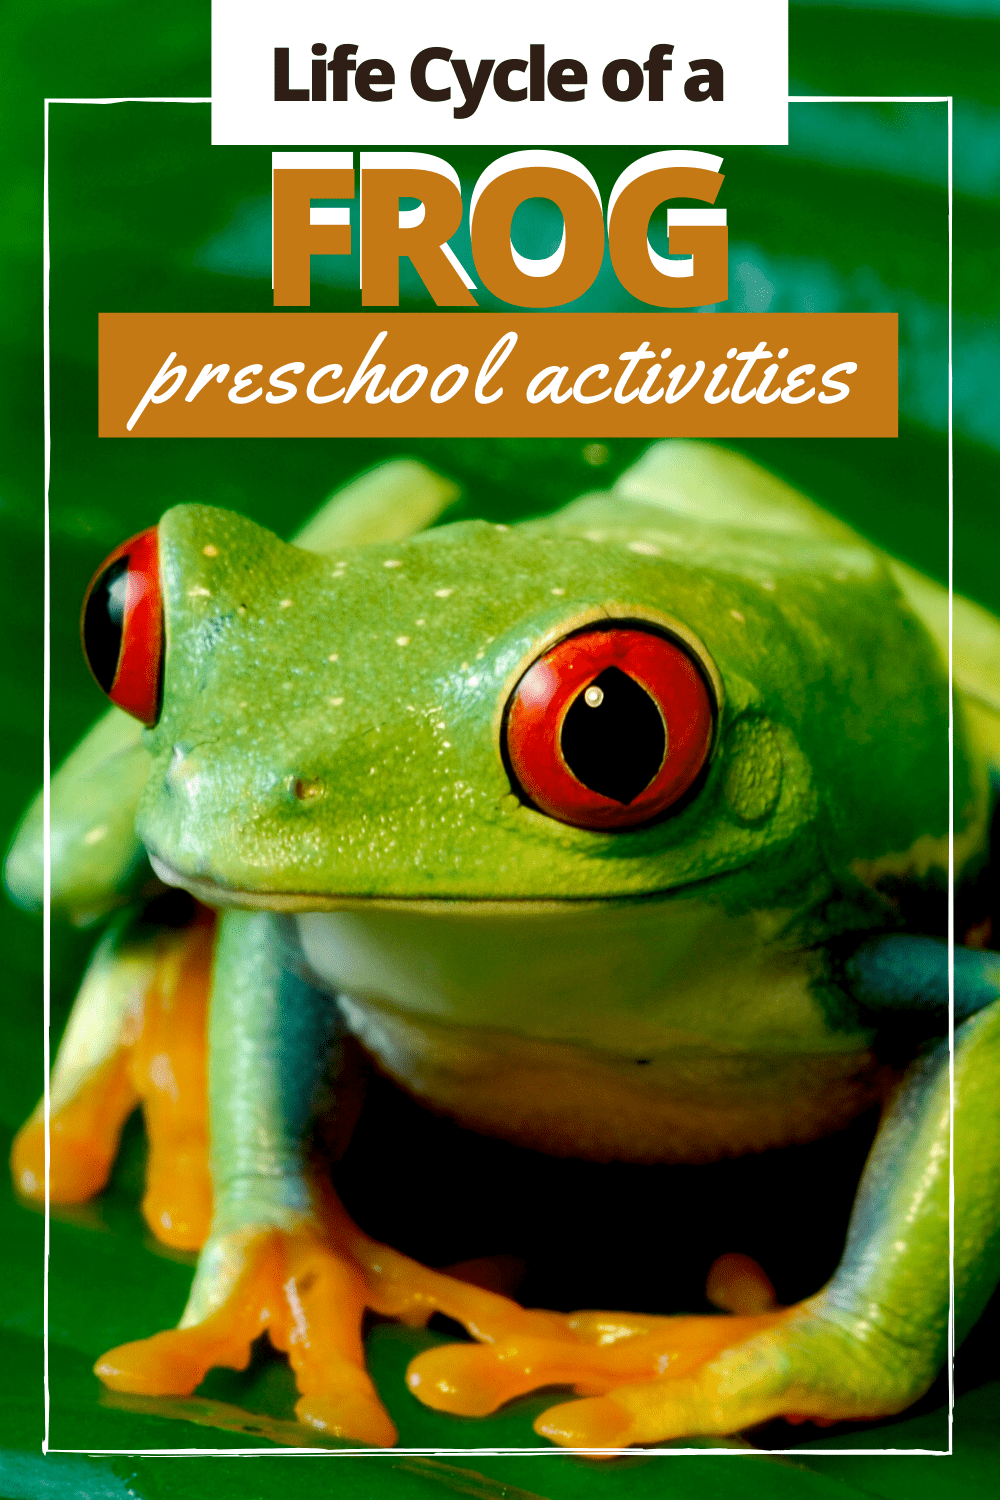 This collection of frog life cycle activities contains both crafts and worksheets that will help you demonstrate how frogs grow.